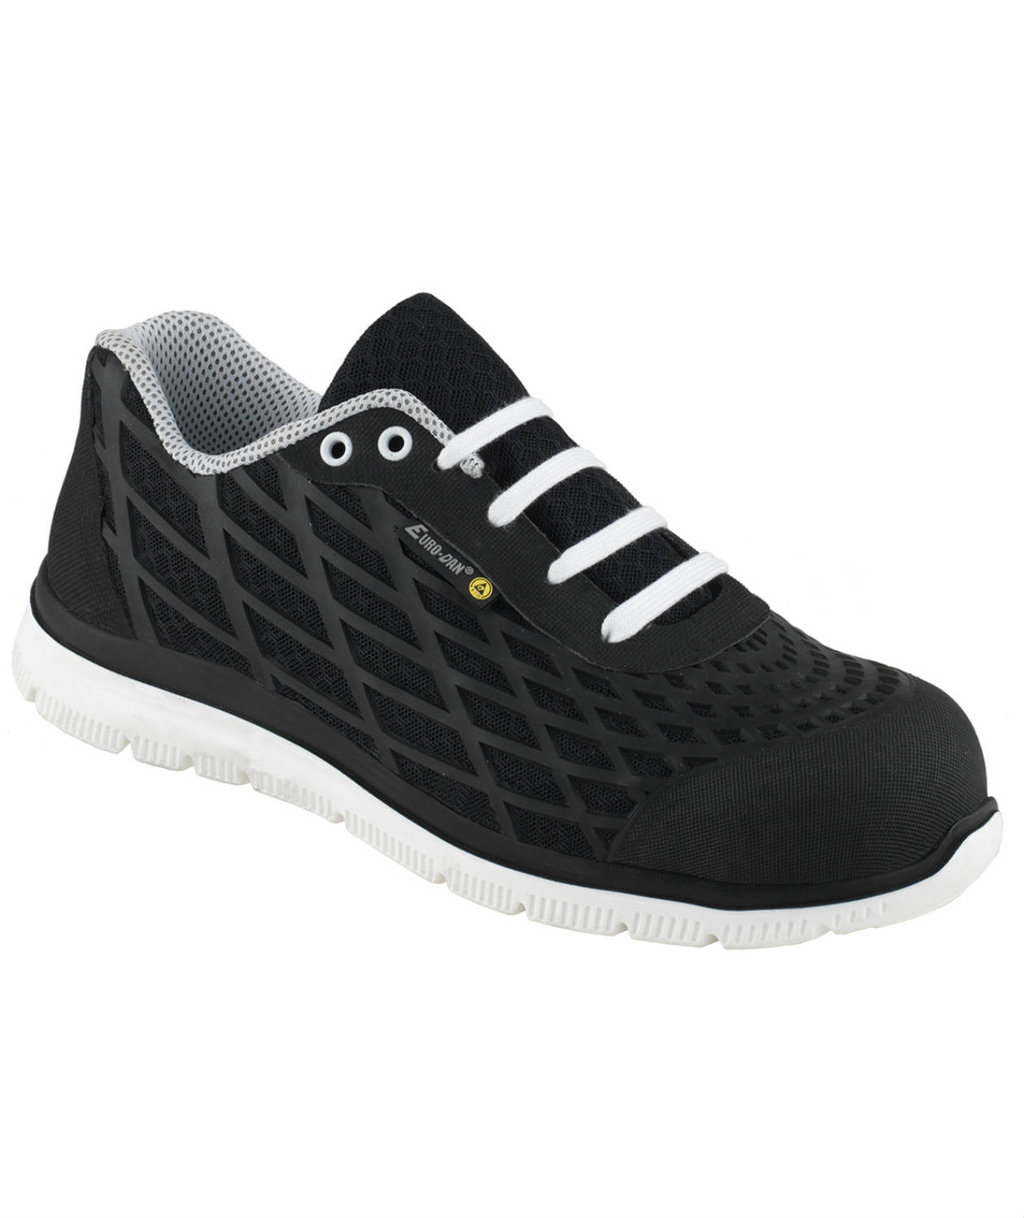 Euro-Dan Spider safety shoes S3, Black/White